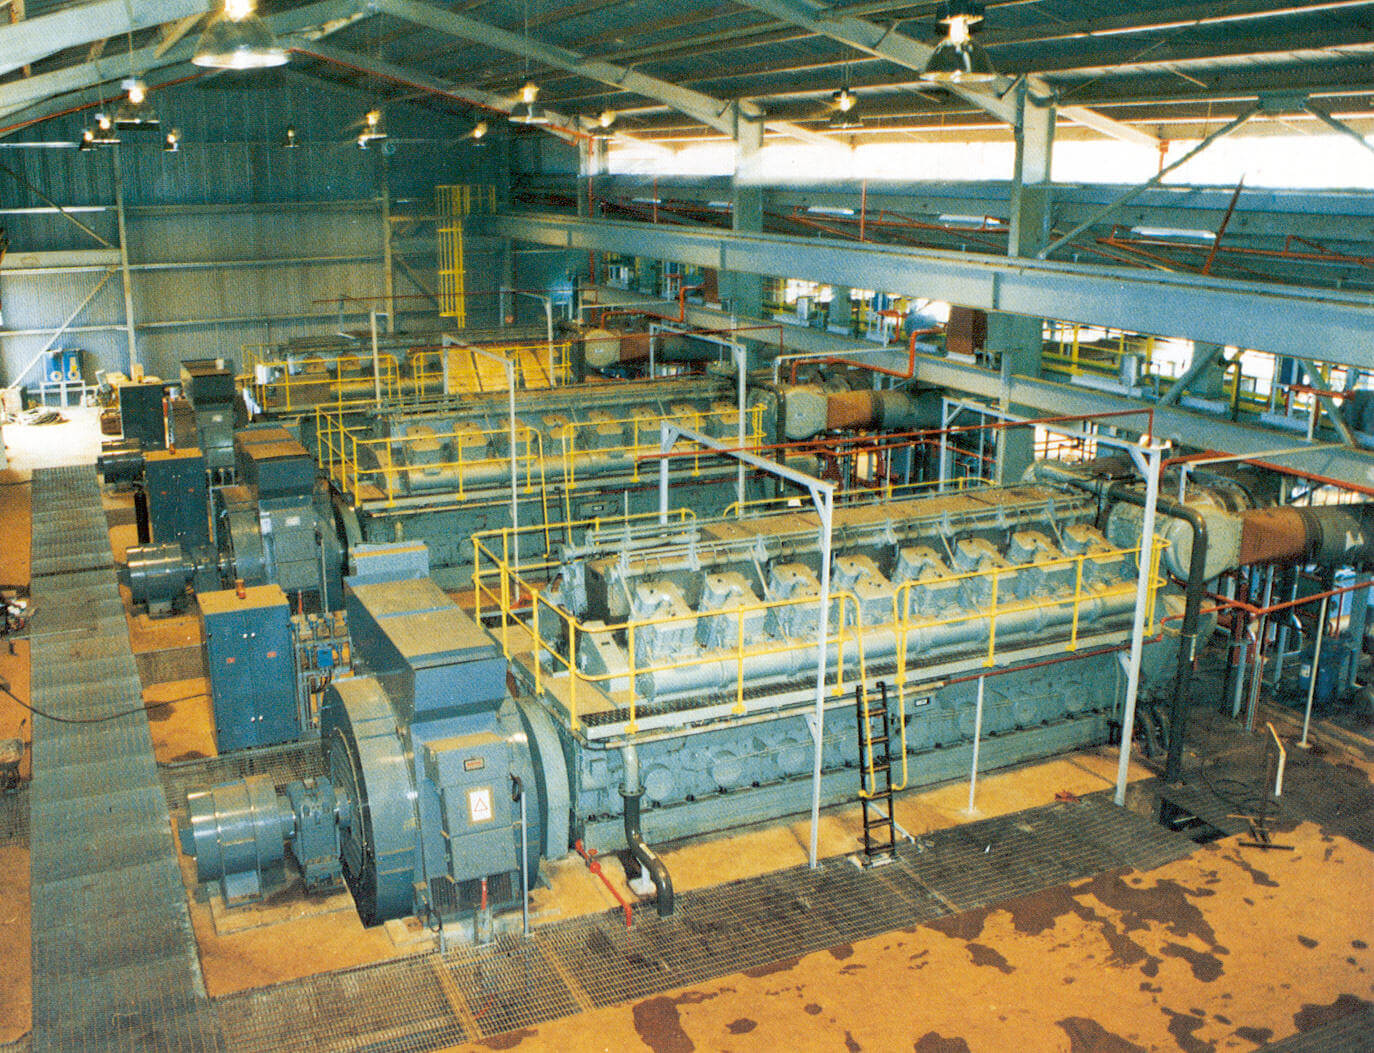 Diesel Power Generation Distribution for Mining Operations